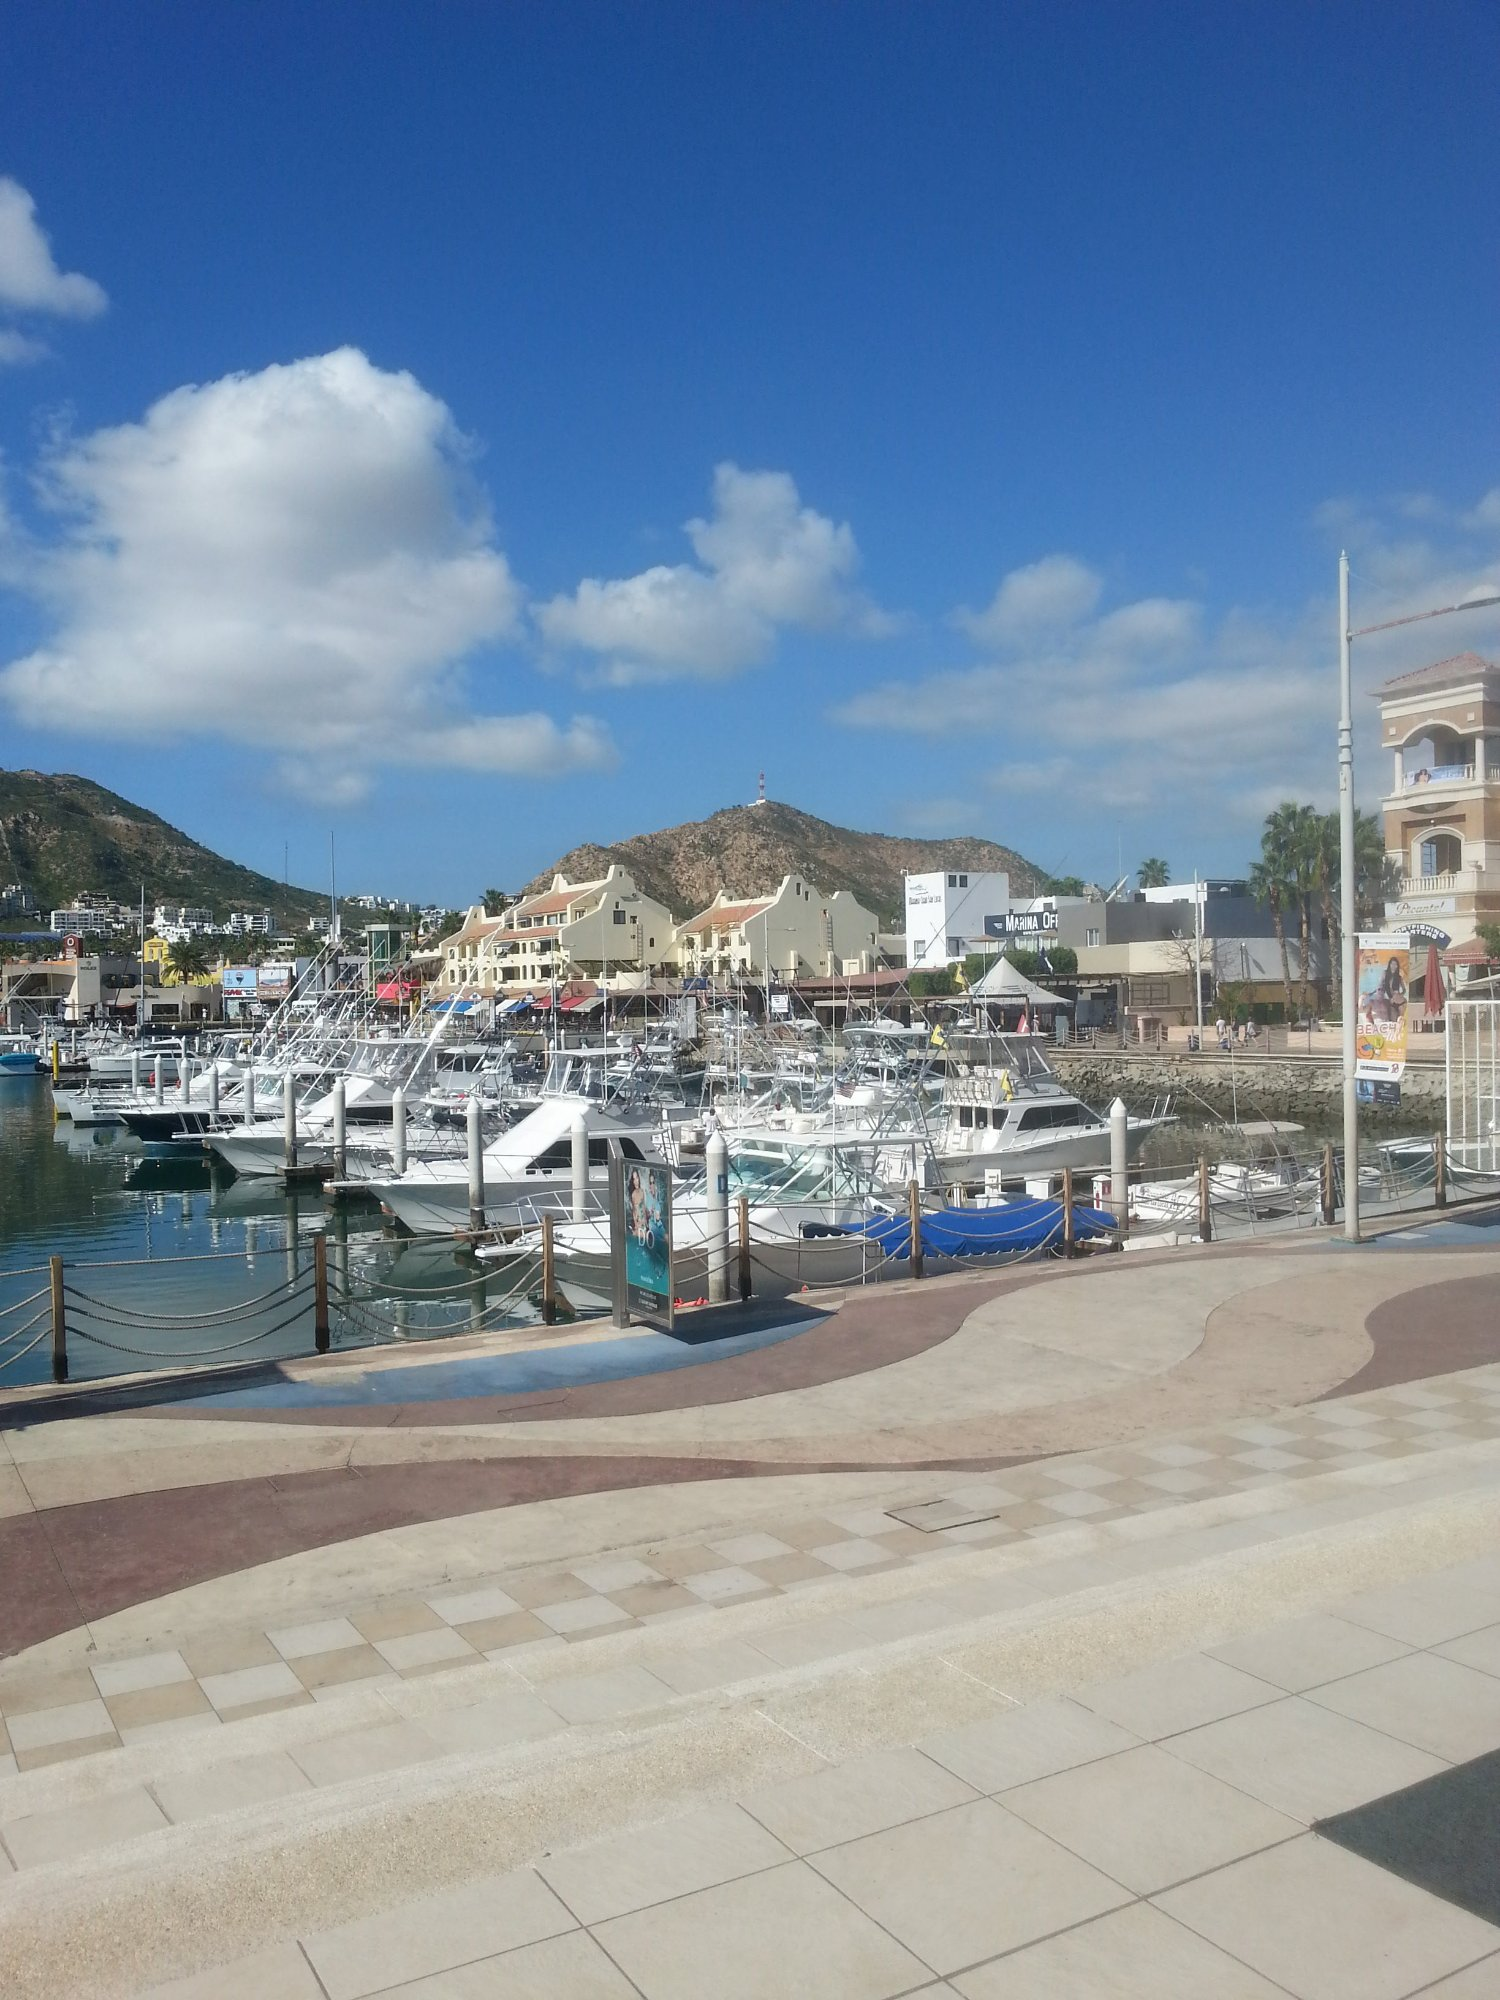 along the marina in cabo there are many attraction of food and drink